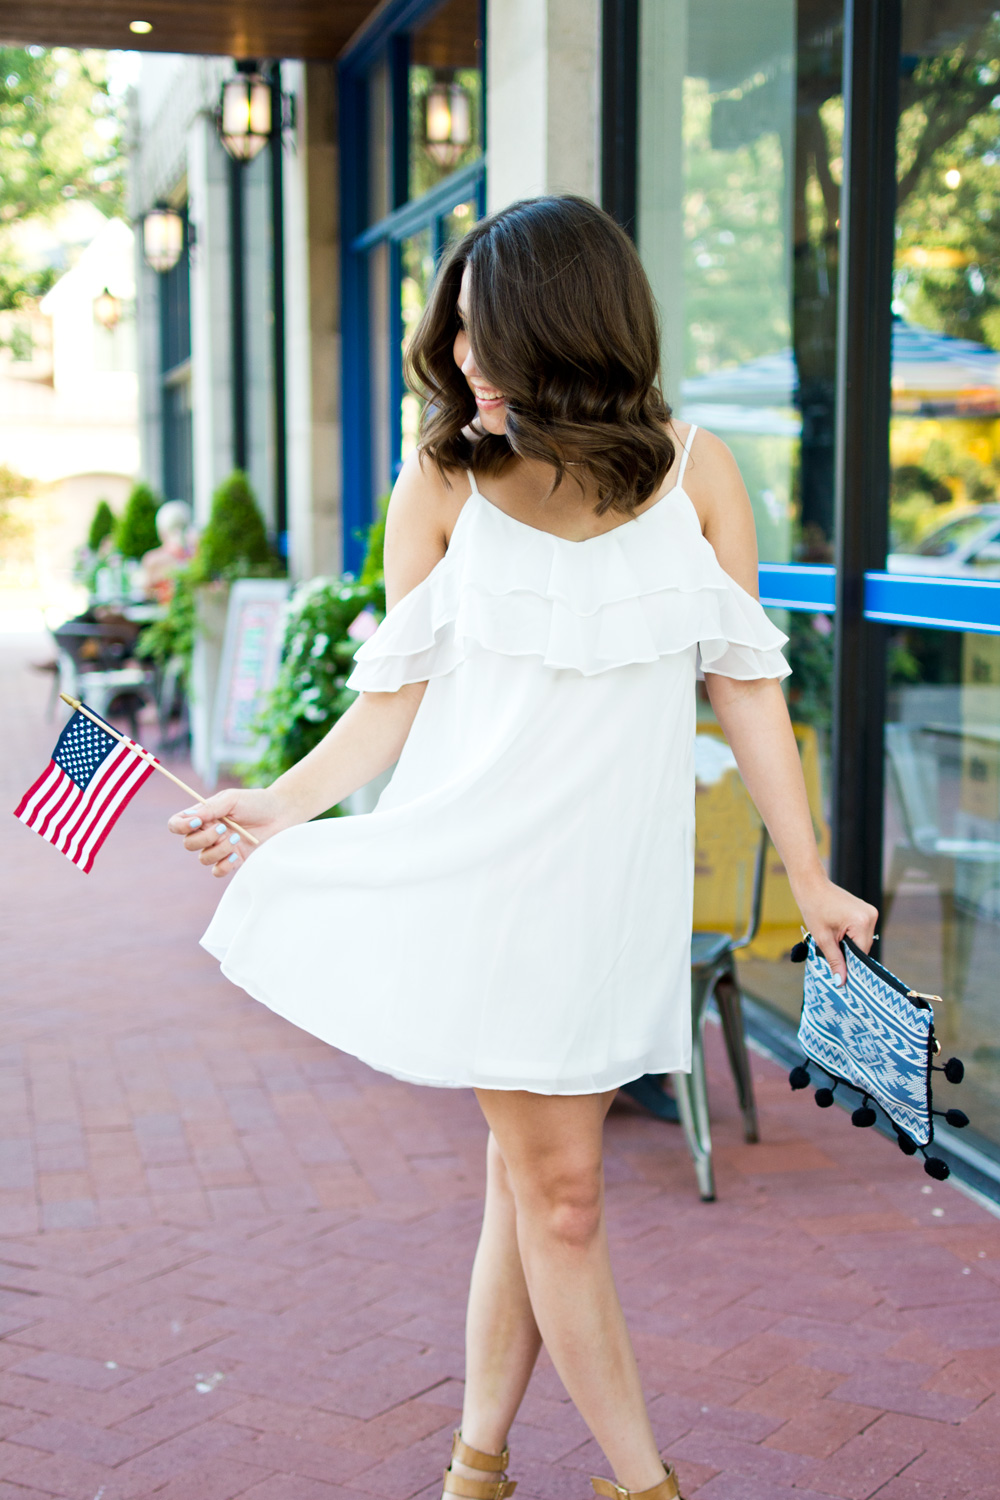 White cold shoulder sundress with blue pom pom clutch and American flag